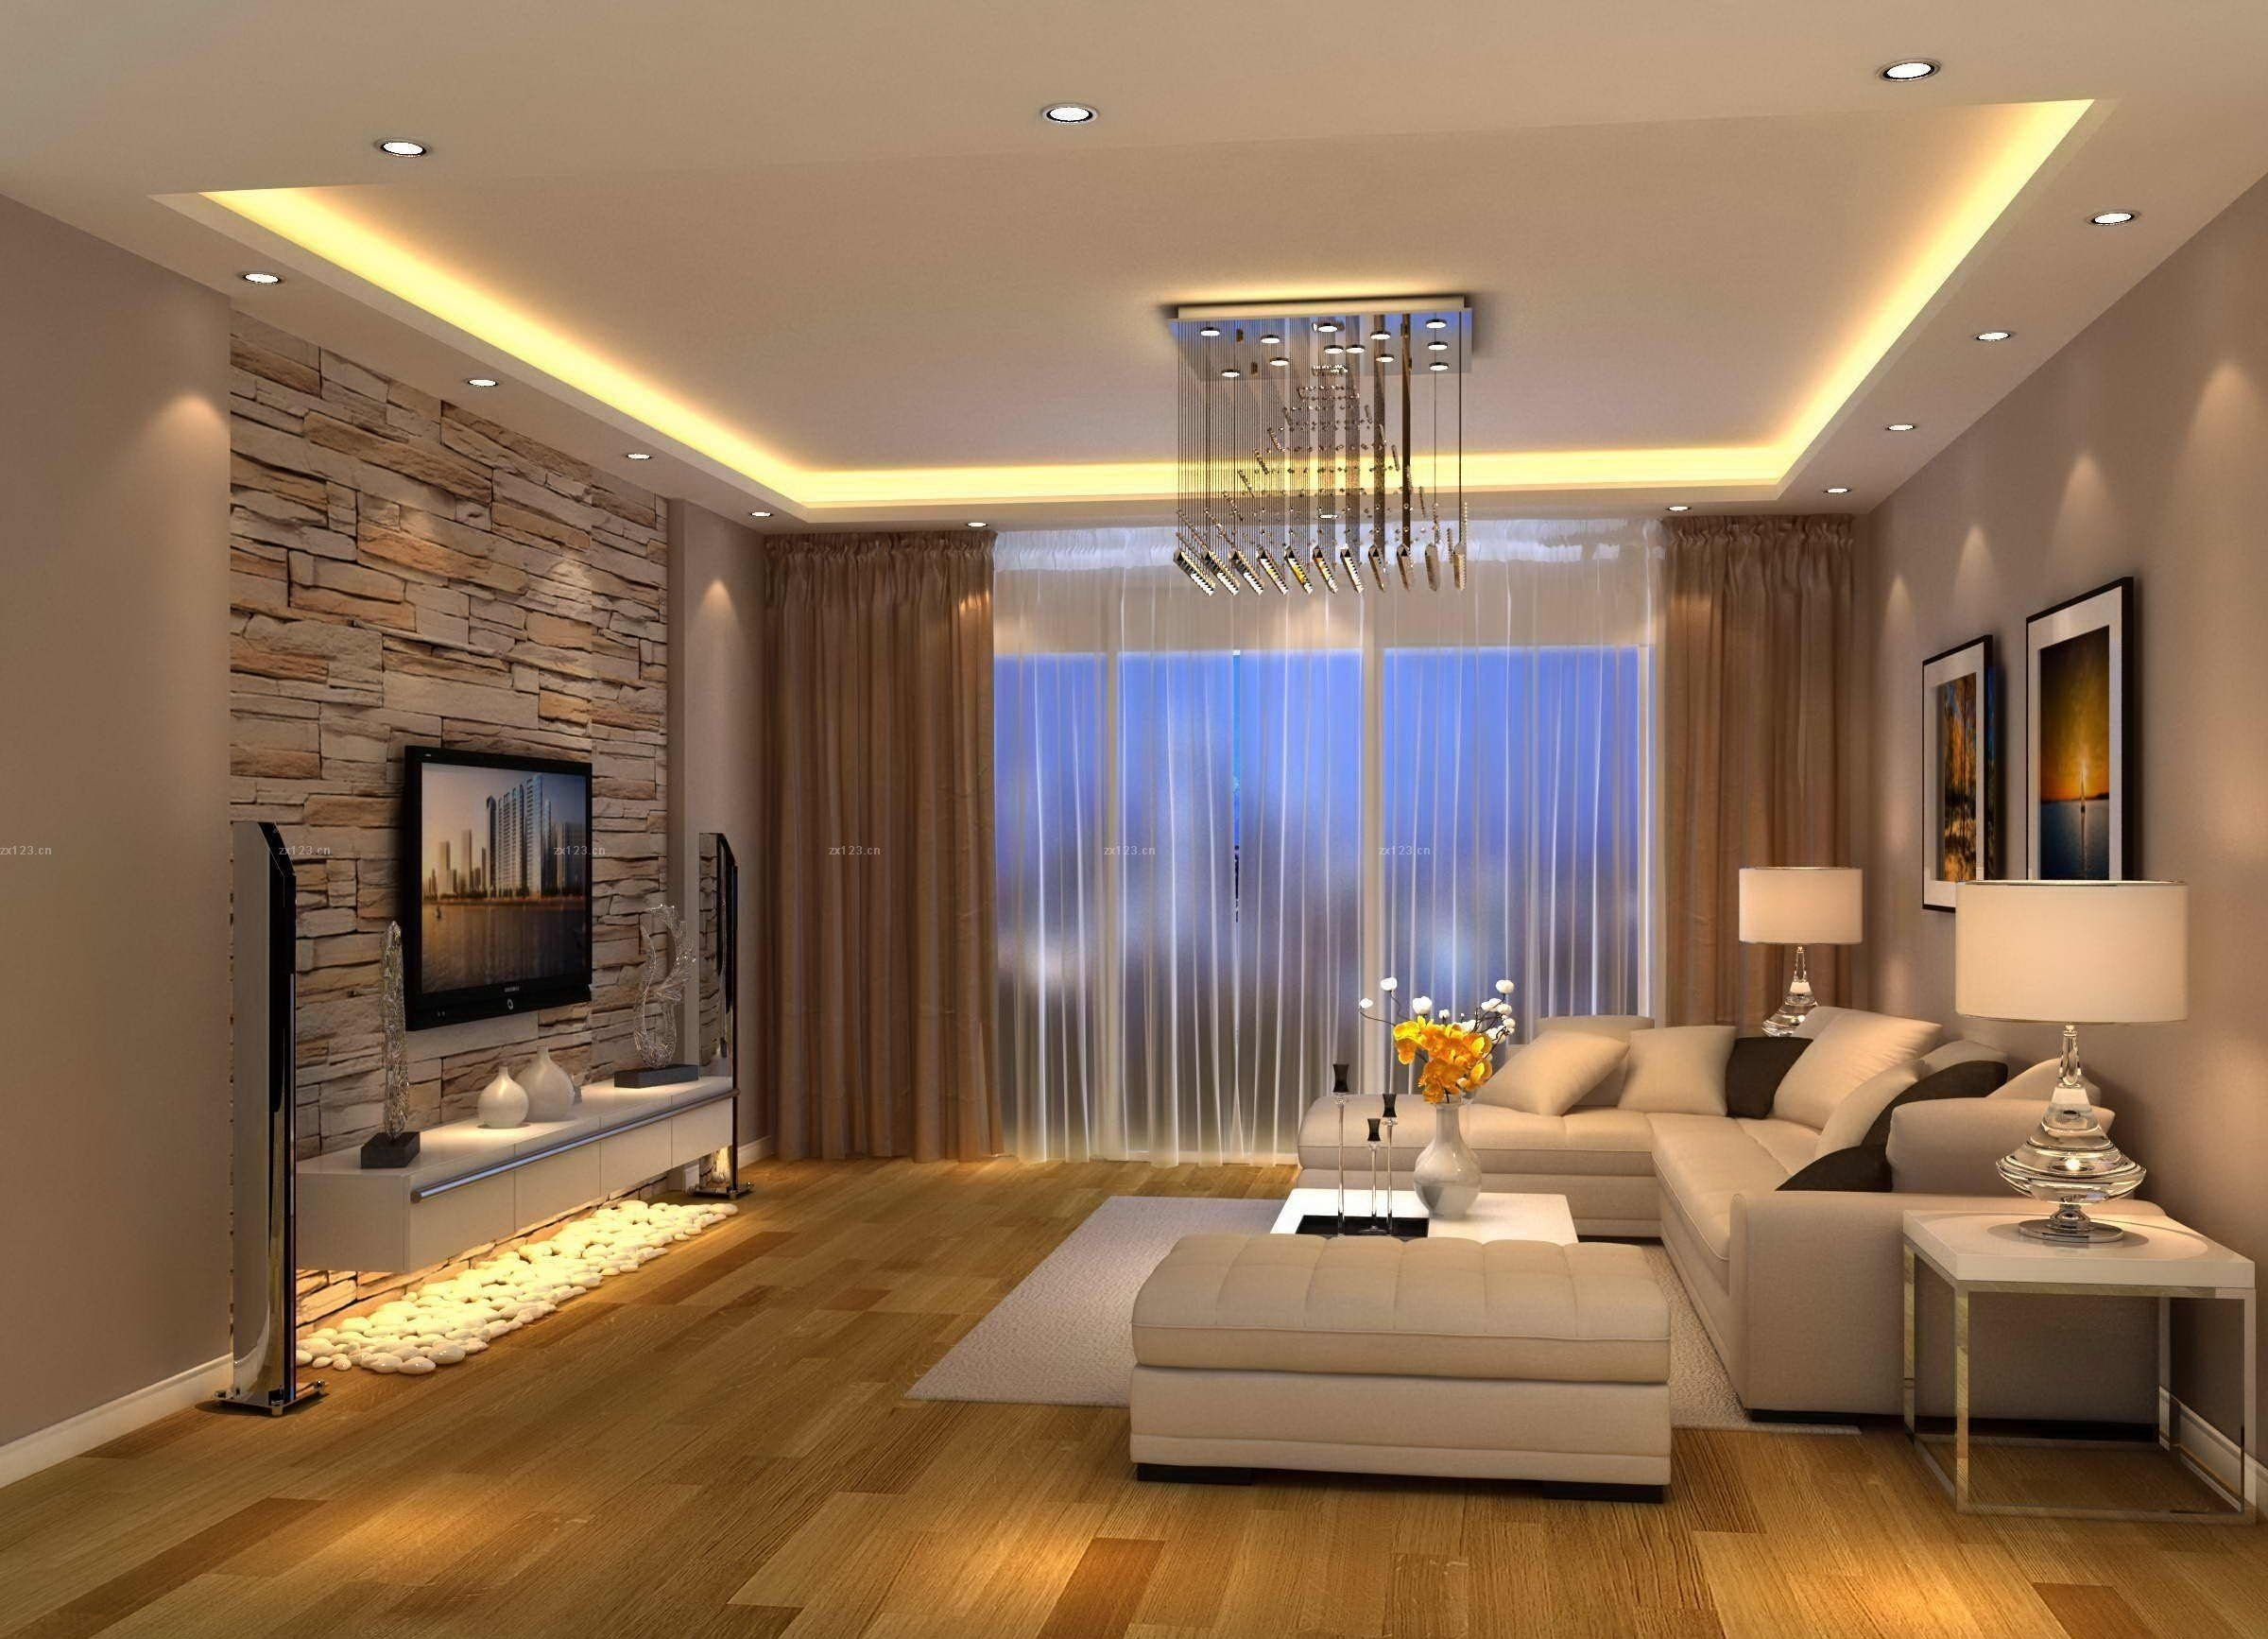 10 Fabulous Contemporary Living Room Decorating Ideas modern living room brown design pinteres 1 2021